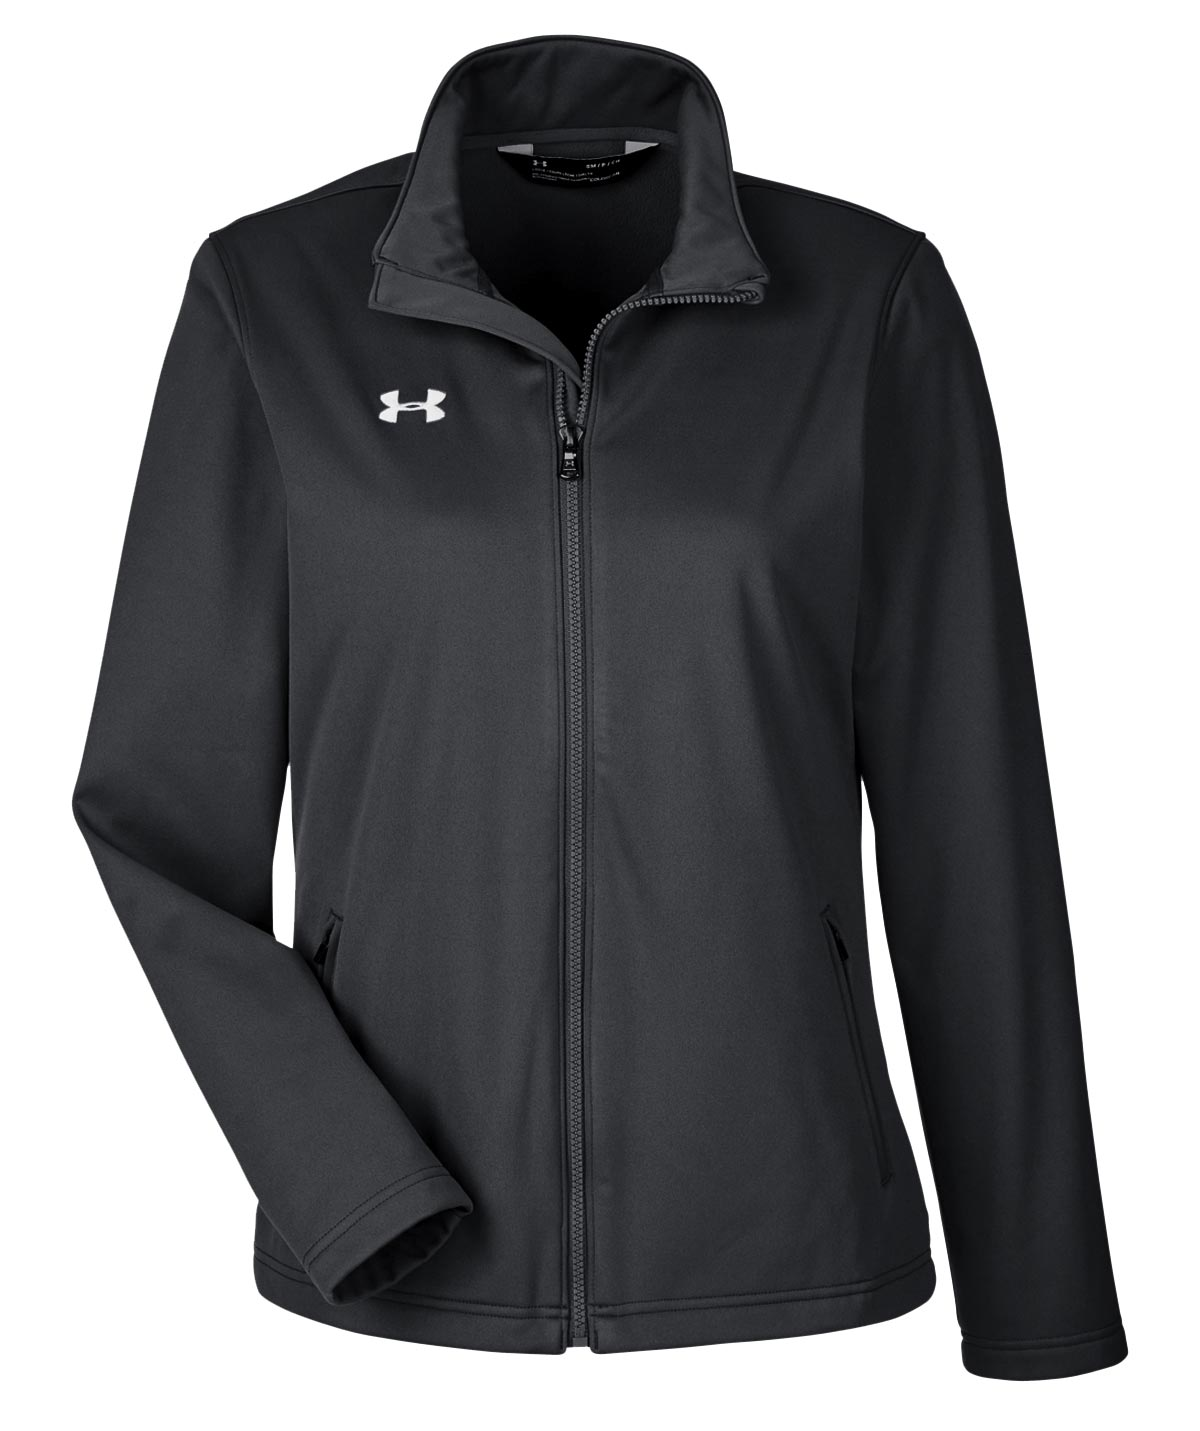 Ladies Under Armour Ultimate Team Jacket